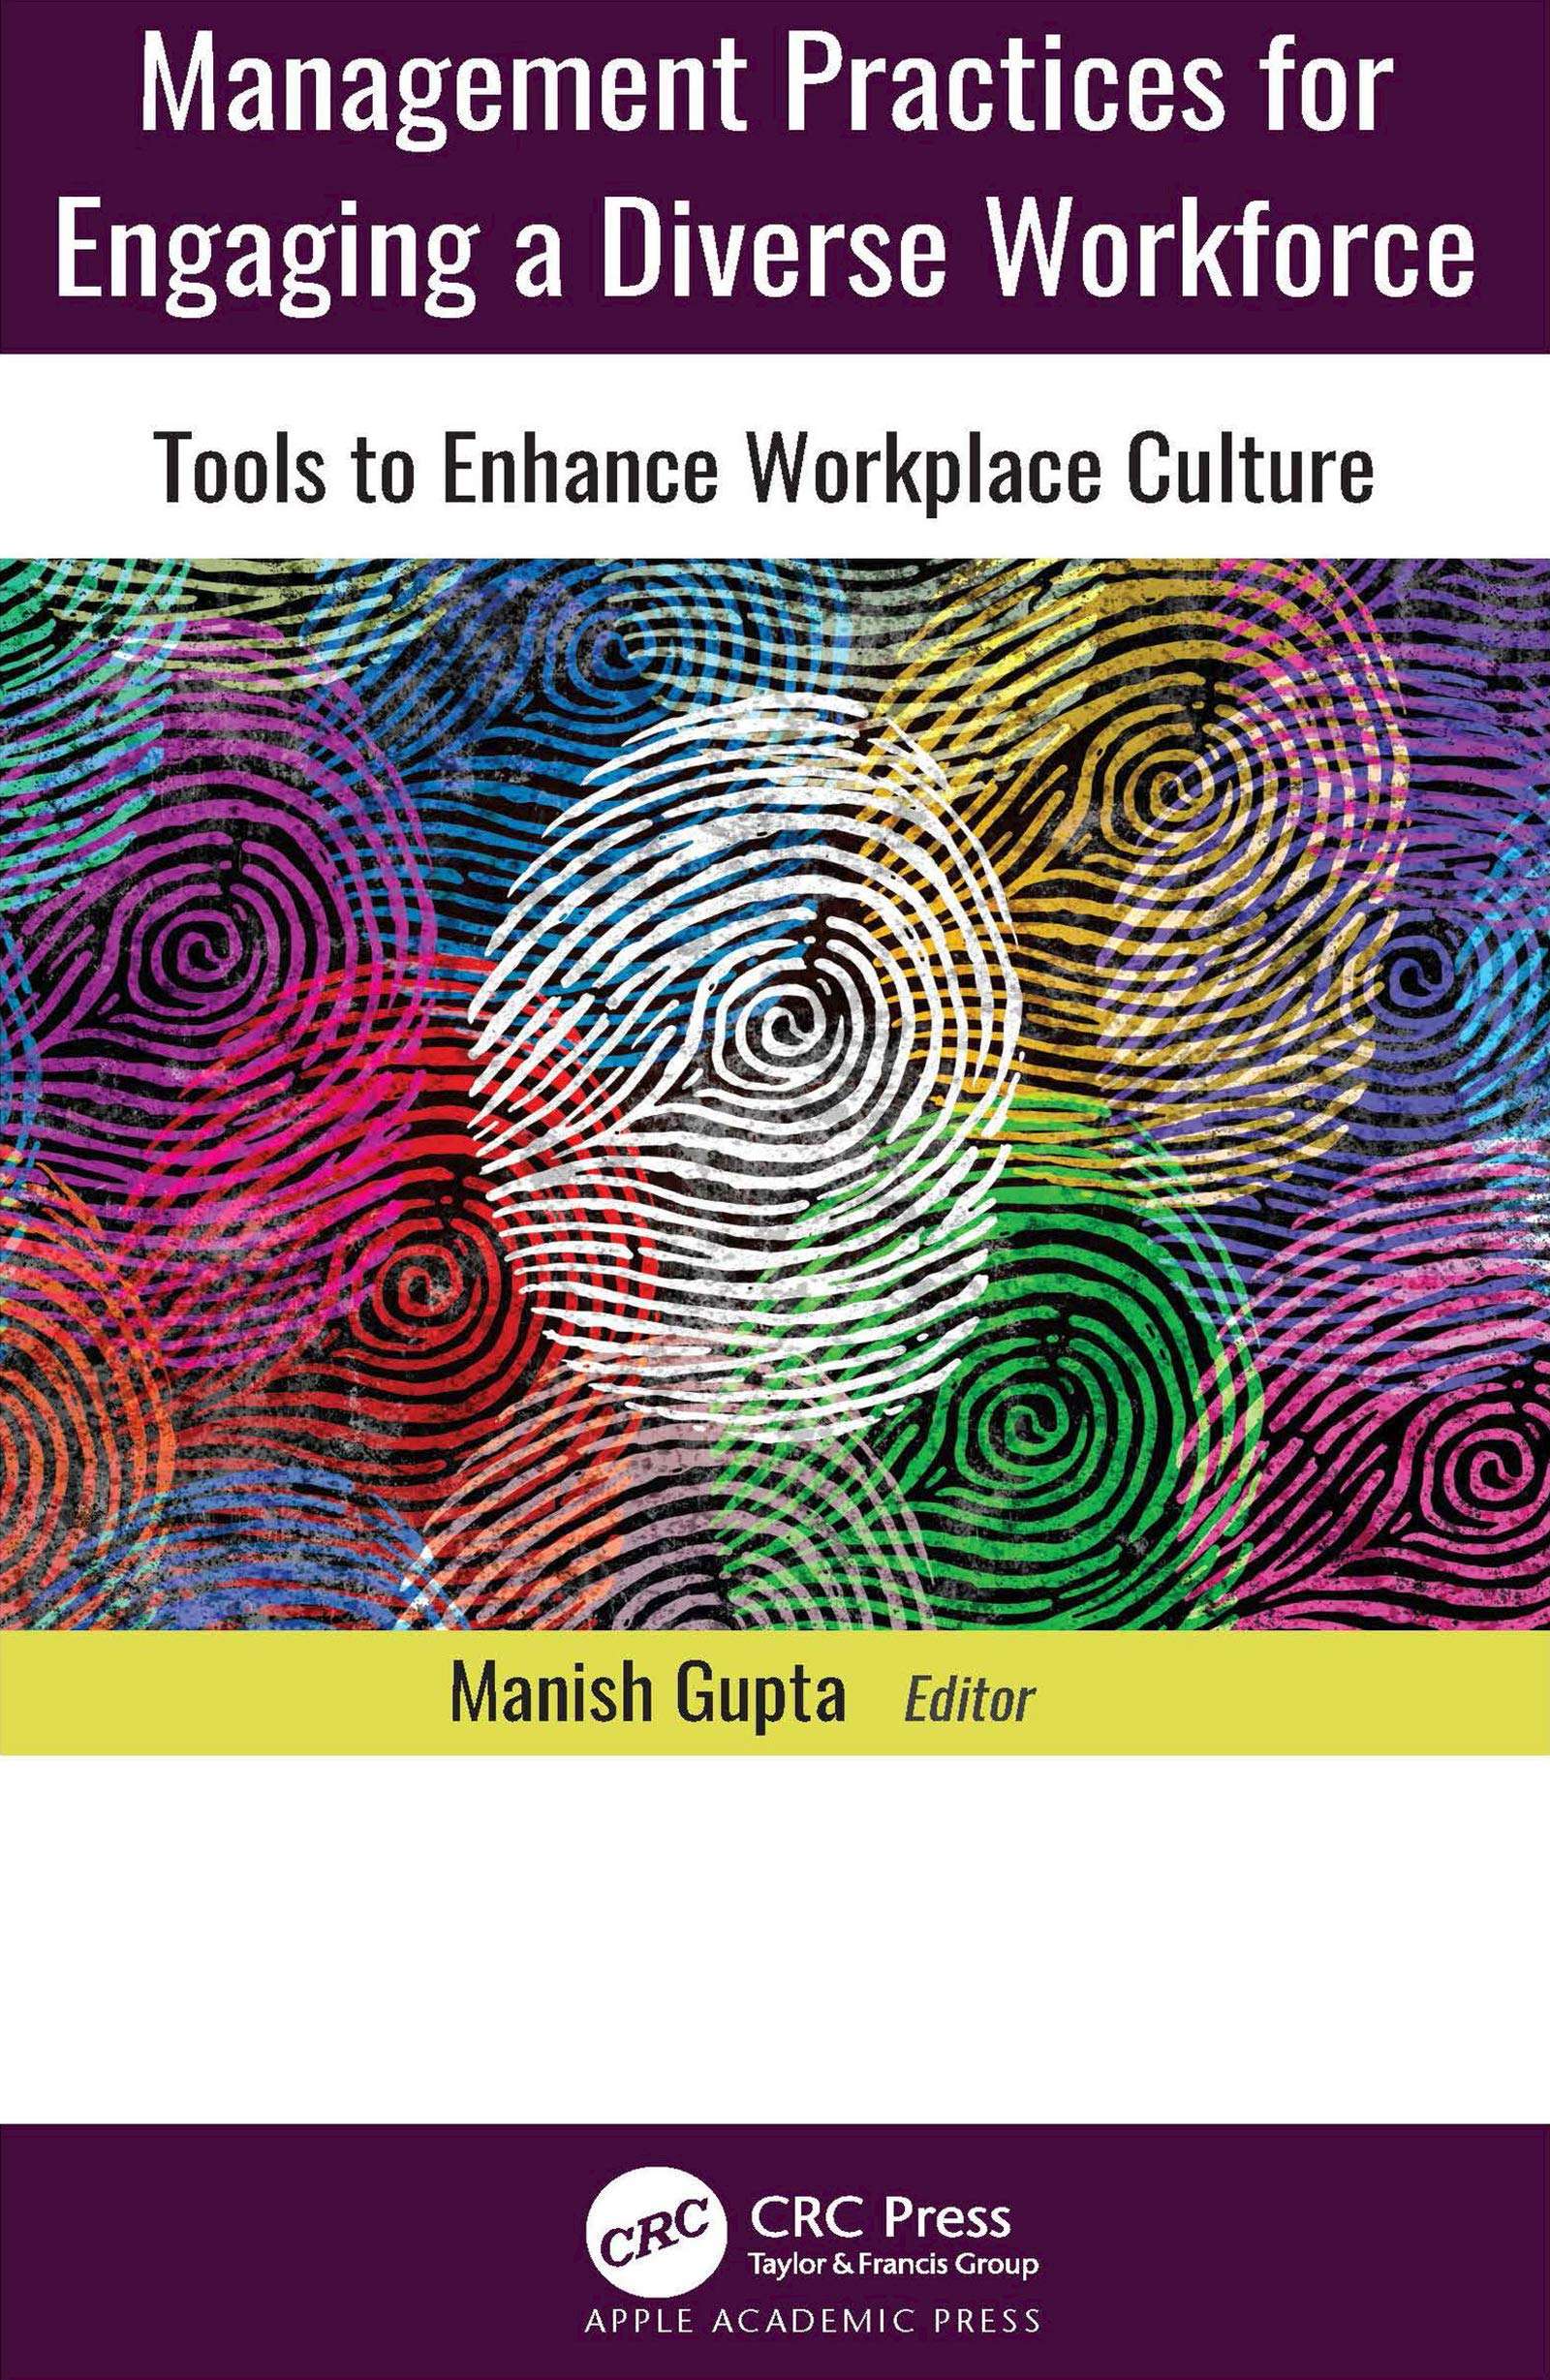 Management Practices for Engaging a Diverse Workforce: Tools to Enhance Workplace Culture